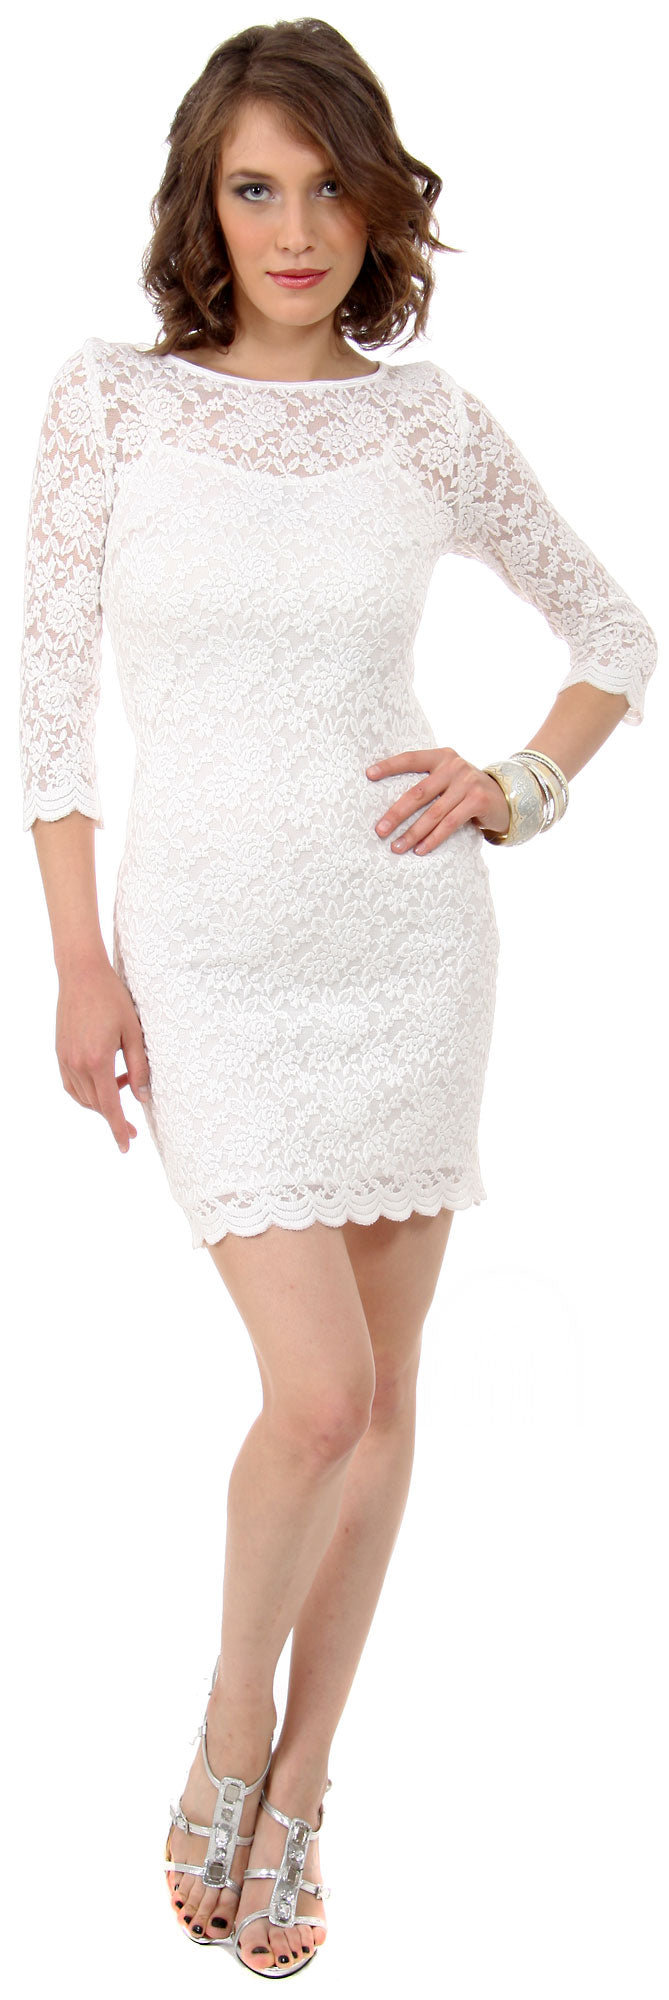 Image of Floral Pattern Lace Short Party Dress With 3/4 Sleeves in Ivory